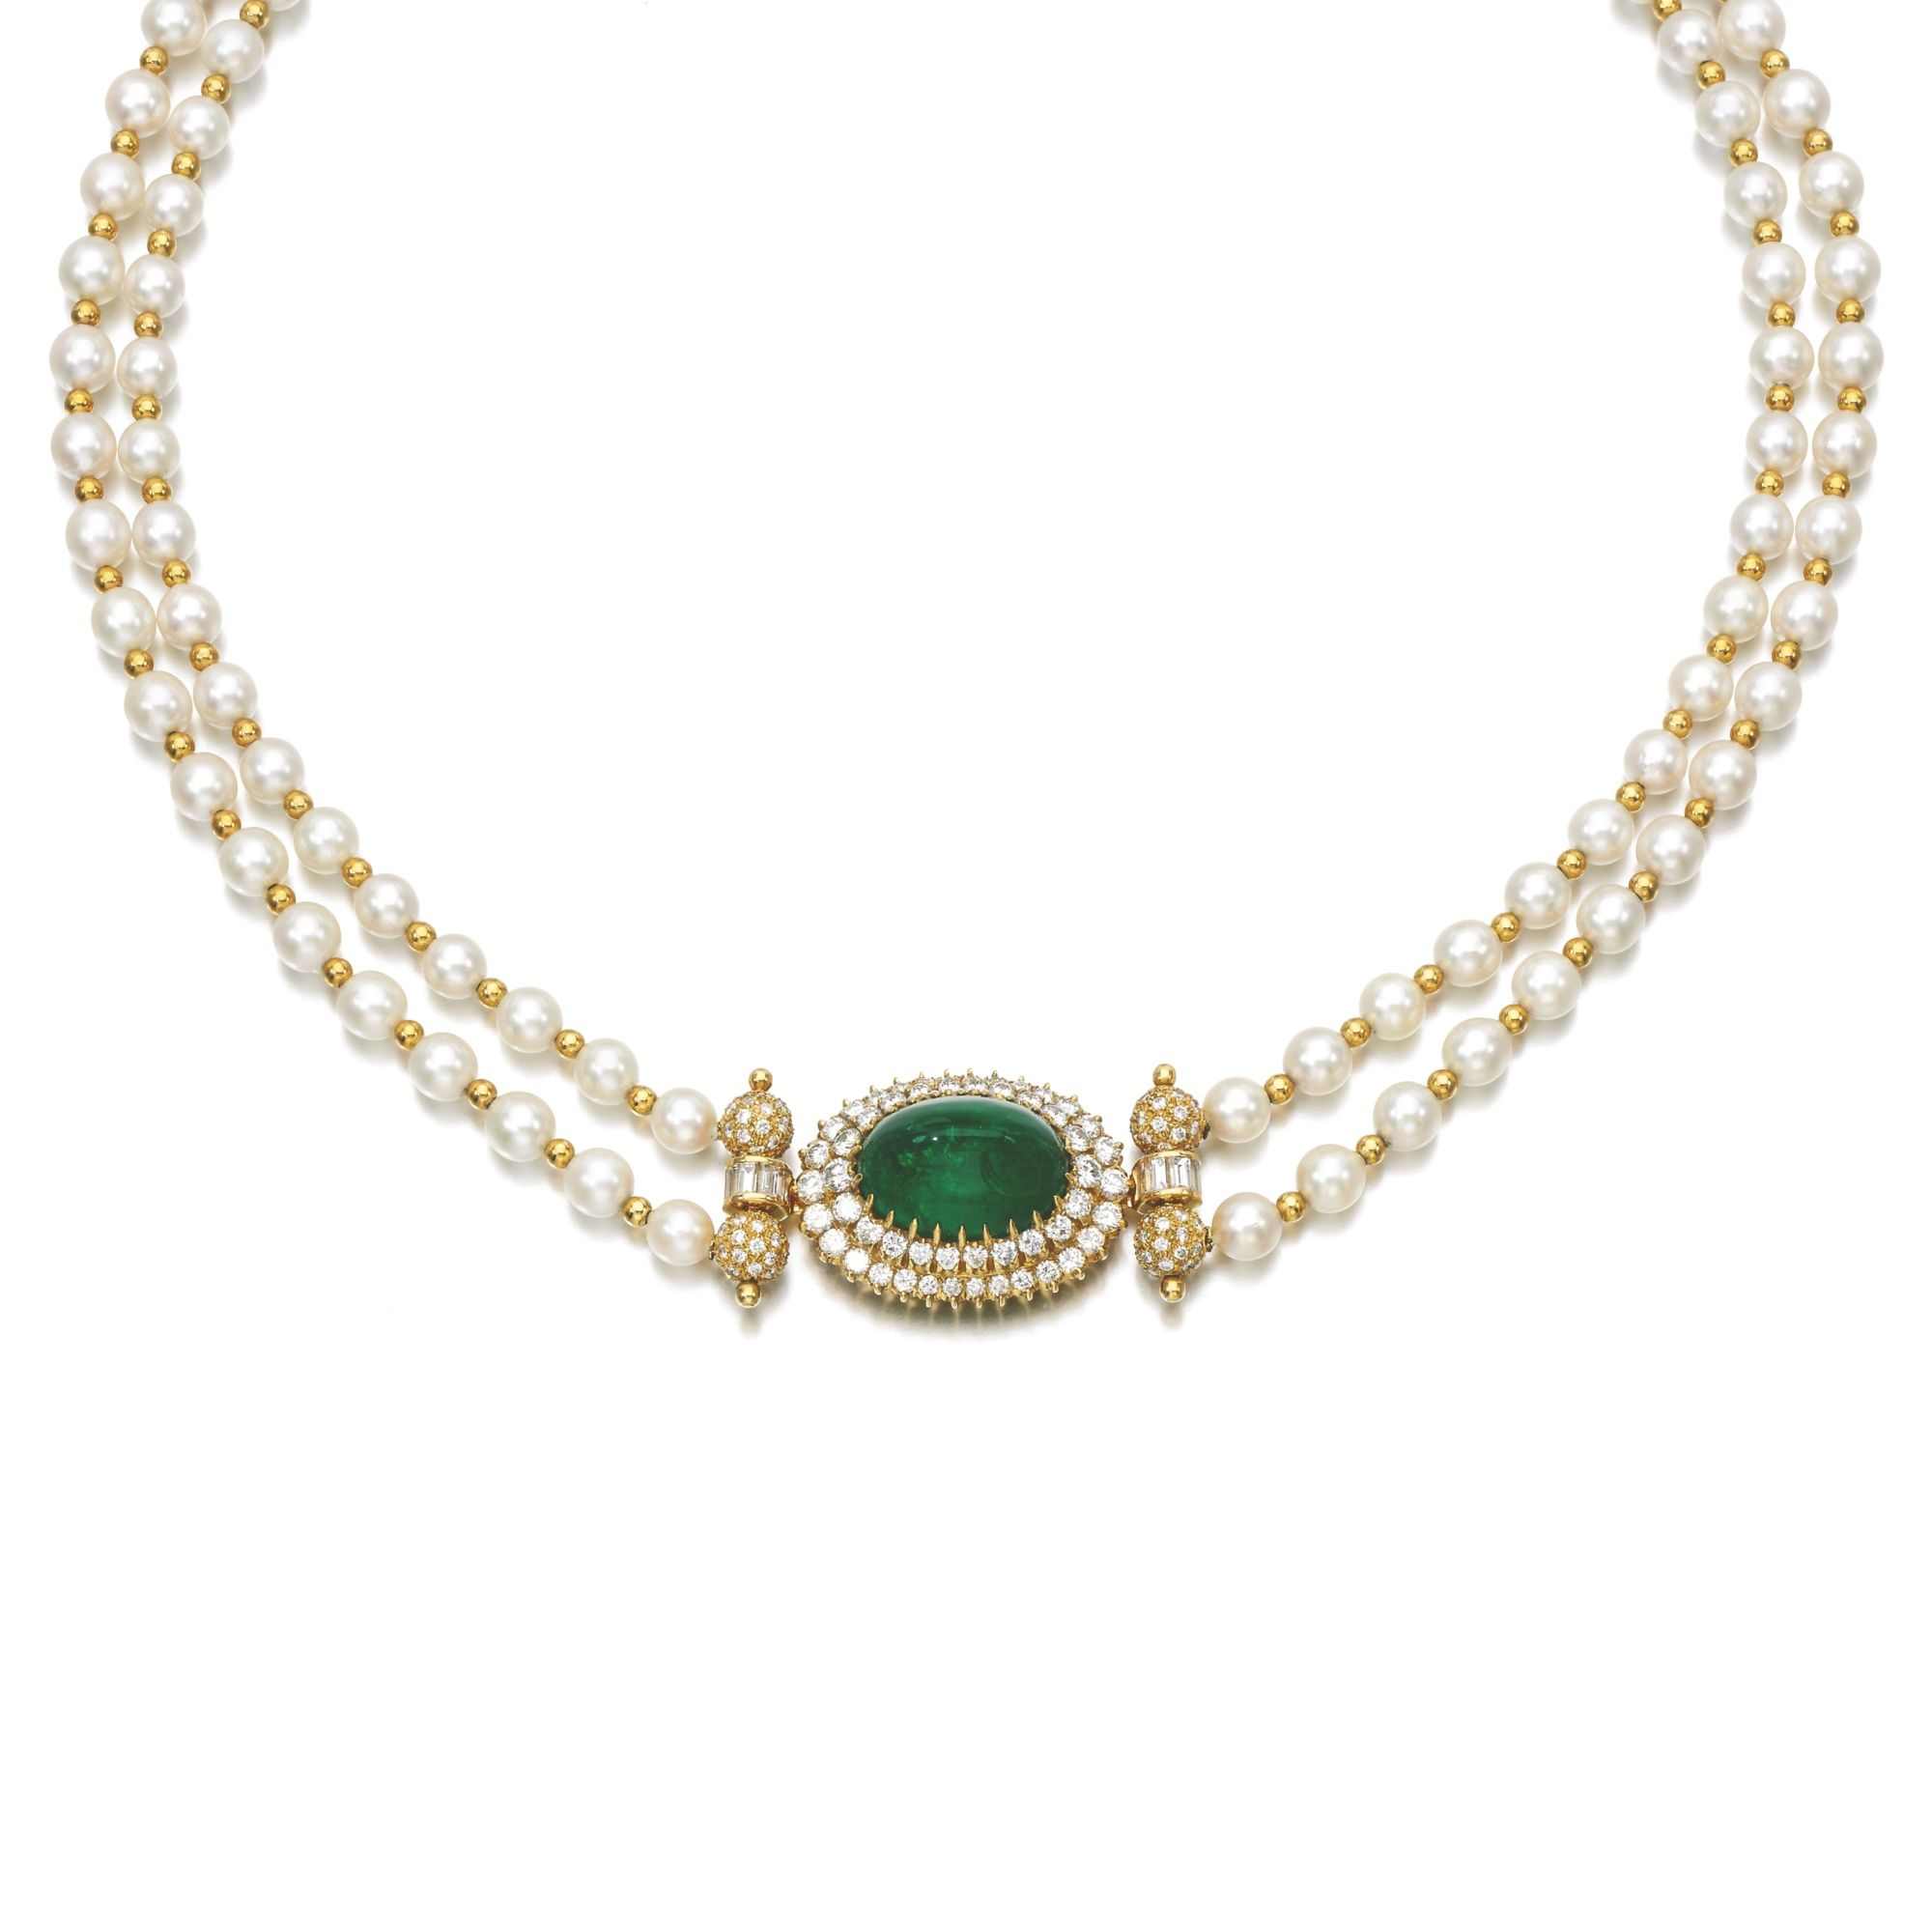 CULTURED PEARL EMERALD AND DIAMOND NECKLACE Designed as